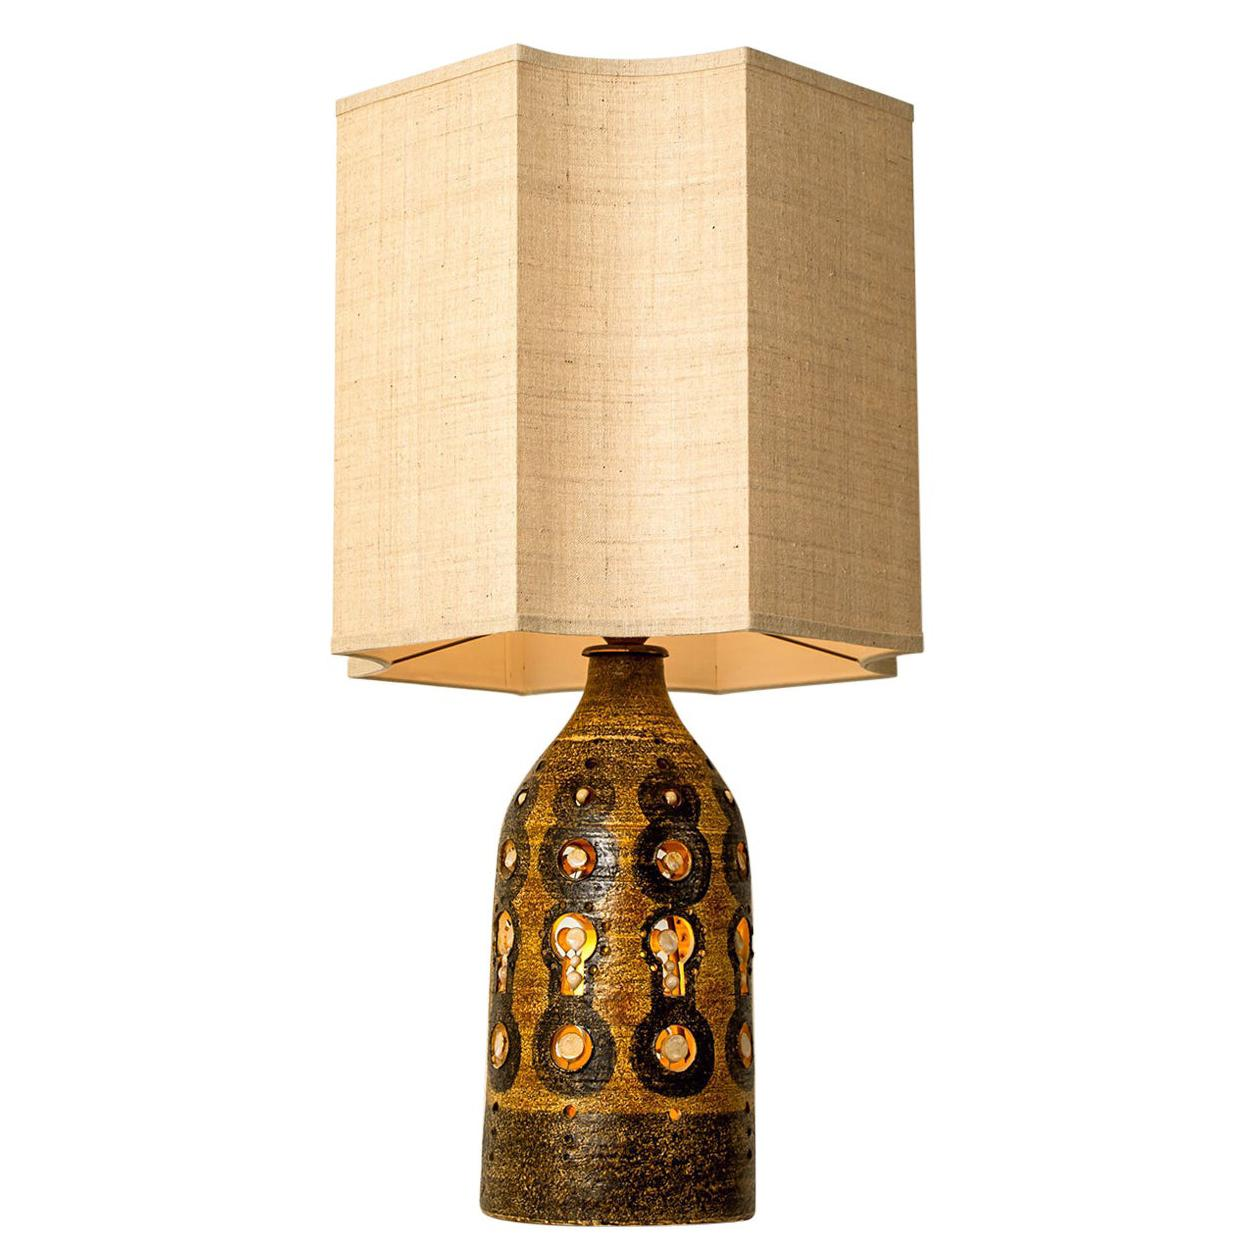 Georges Pelletier Table Lamp, circa 1970, France